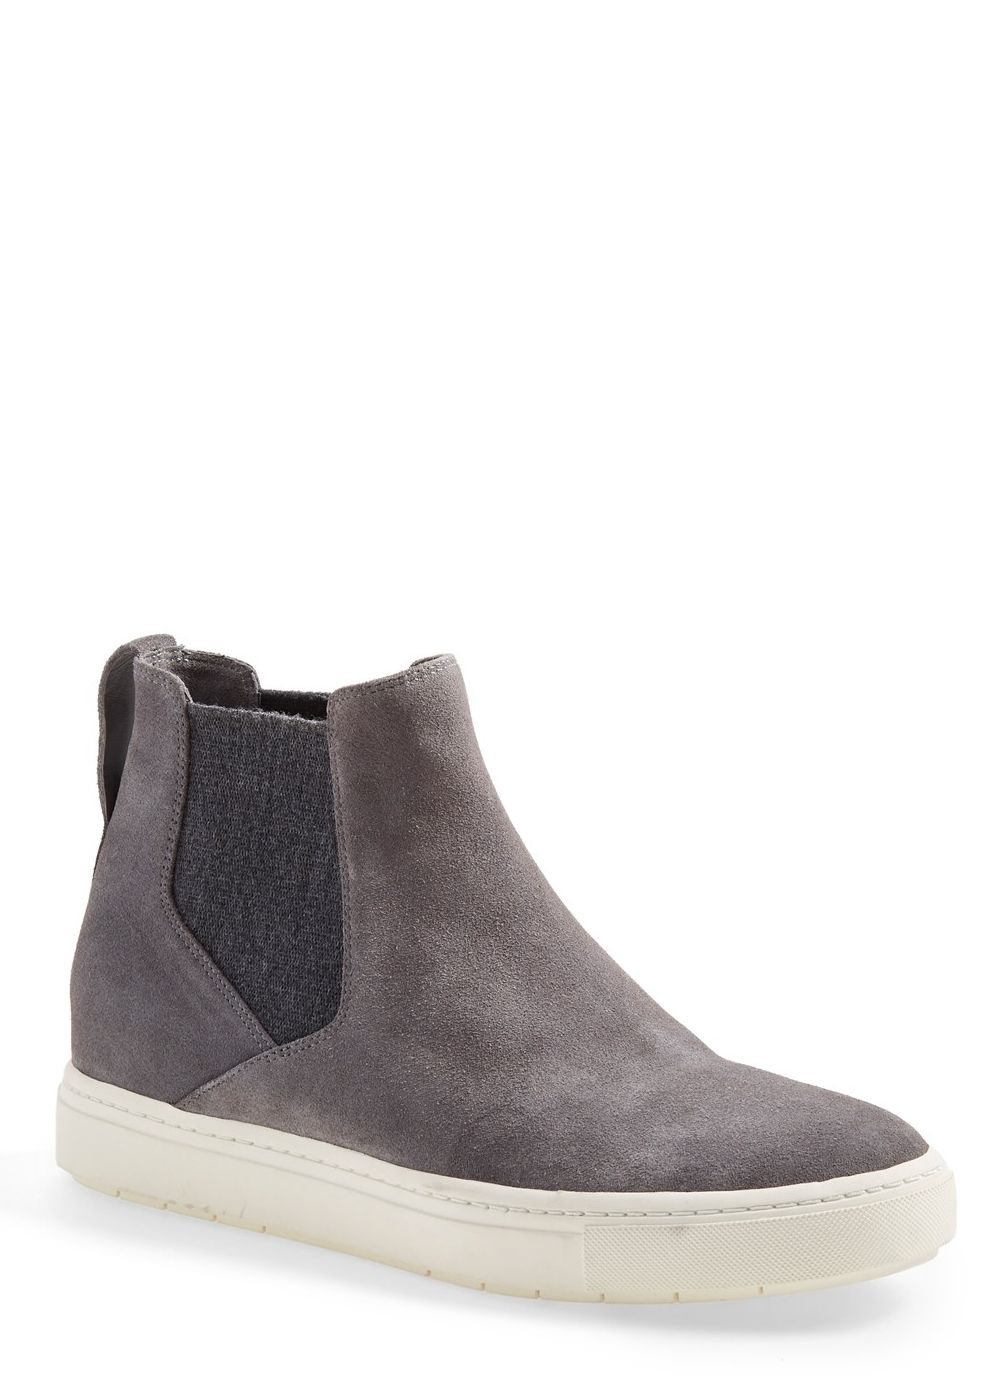 d55e54707d6615 These suede high-top sneakers are totally sport-chic